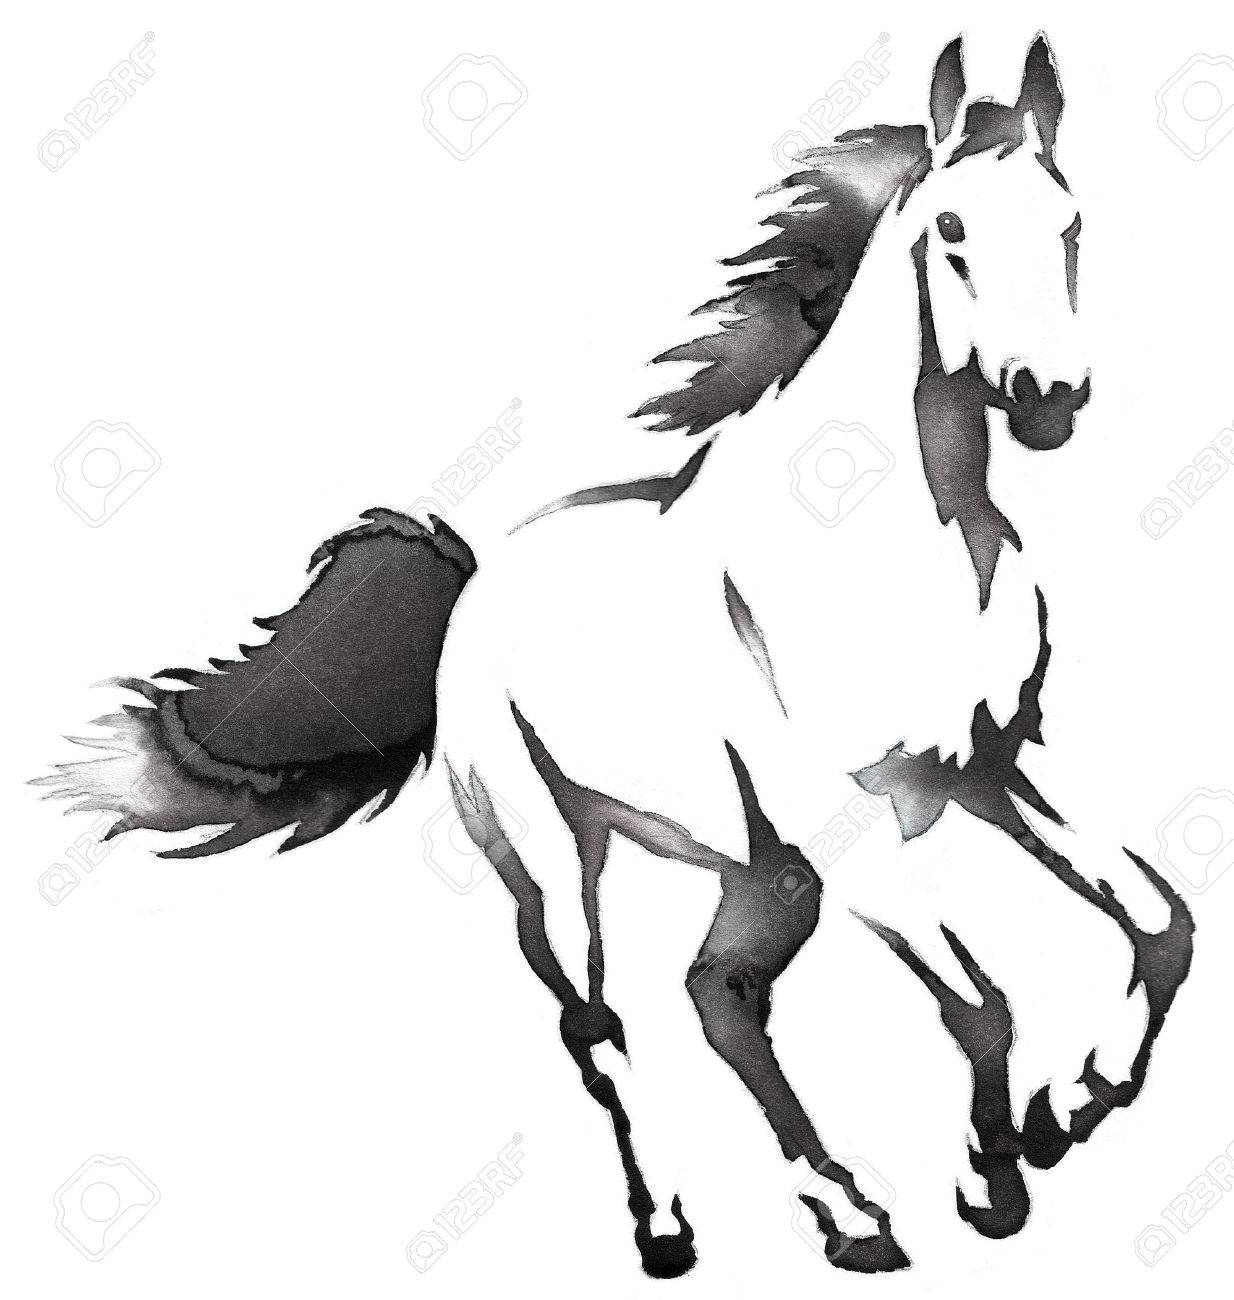 Black And White Painting With Water And Ink Draw Horse Illustration Stock Photo Picture And Royalty Free Image Image 69448096